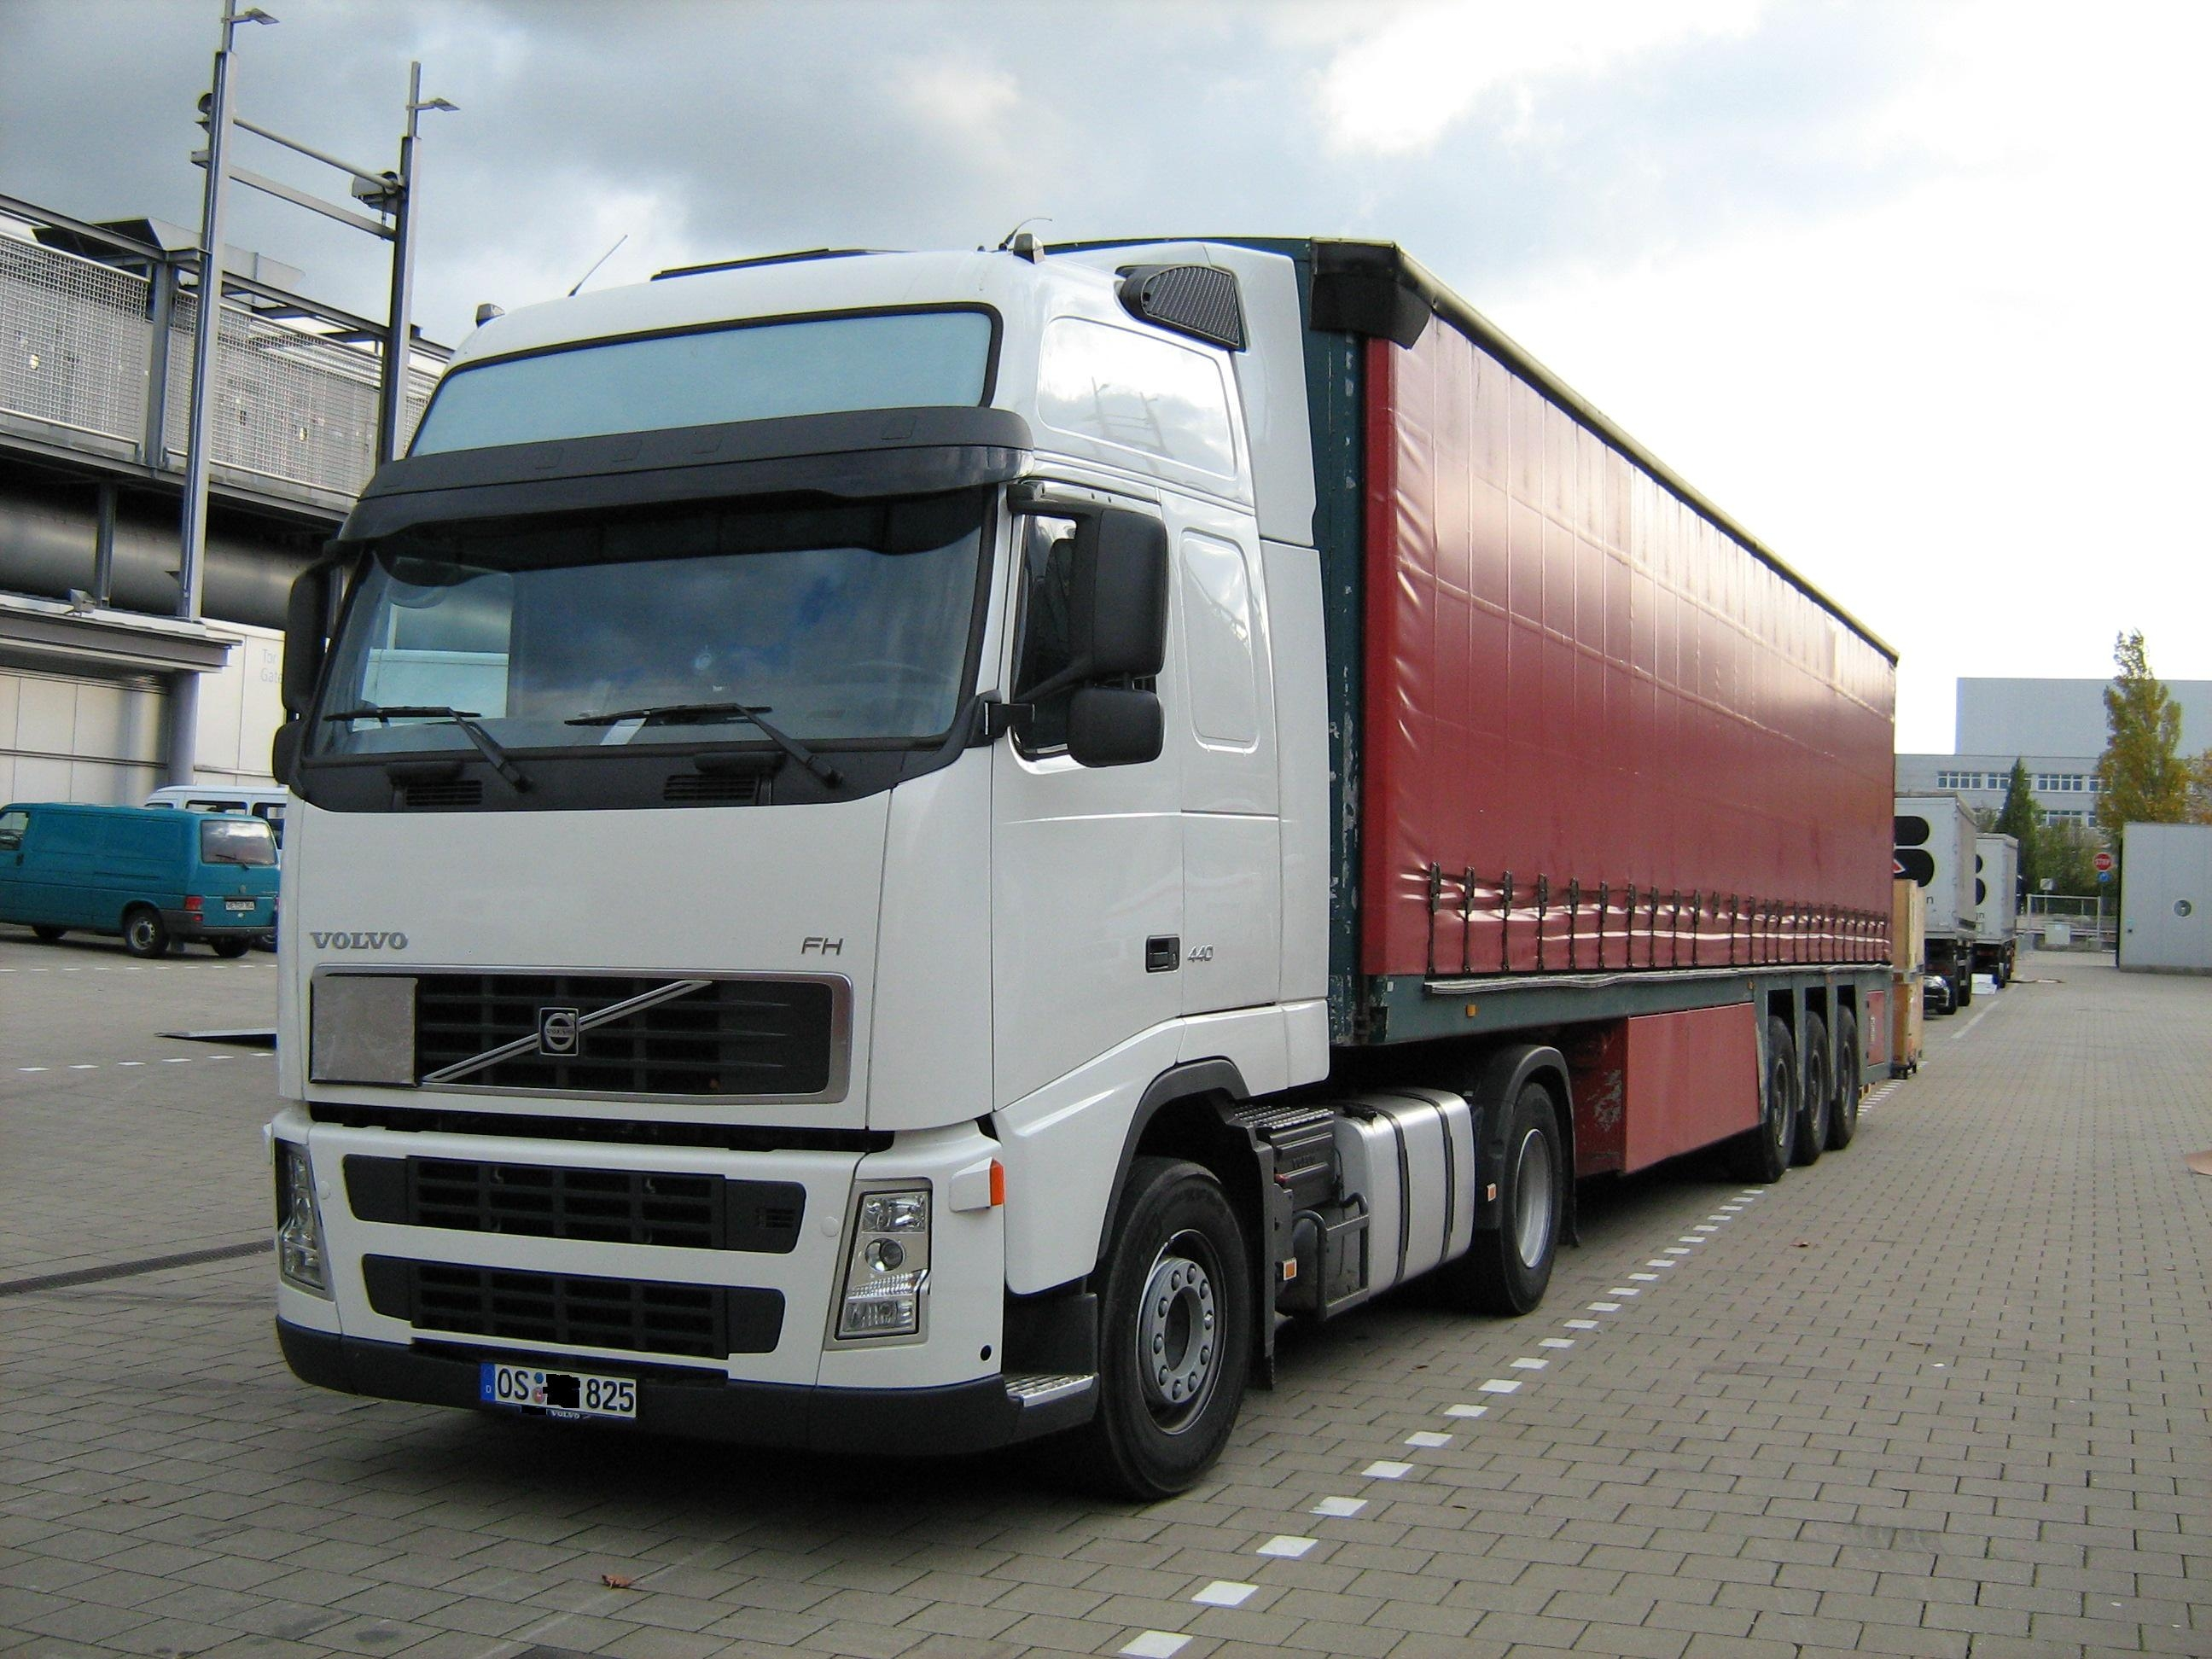 datei volvo lkw fh sattelzug jpg wikipedia. Black Bedroom Furniture Sets. Home Design Ideas